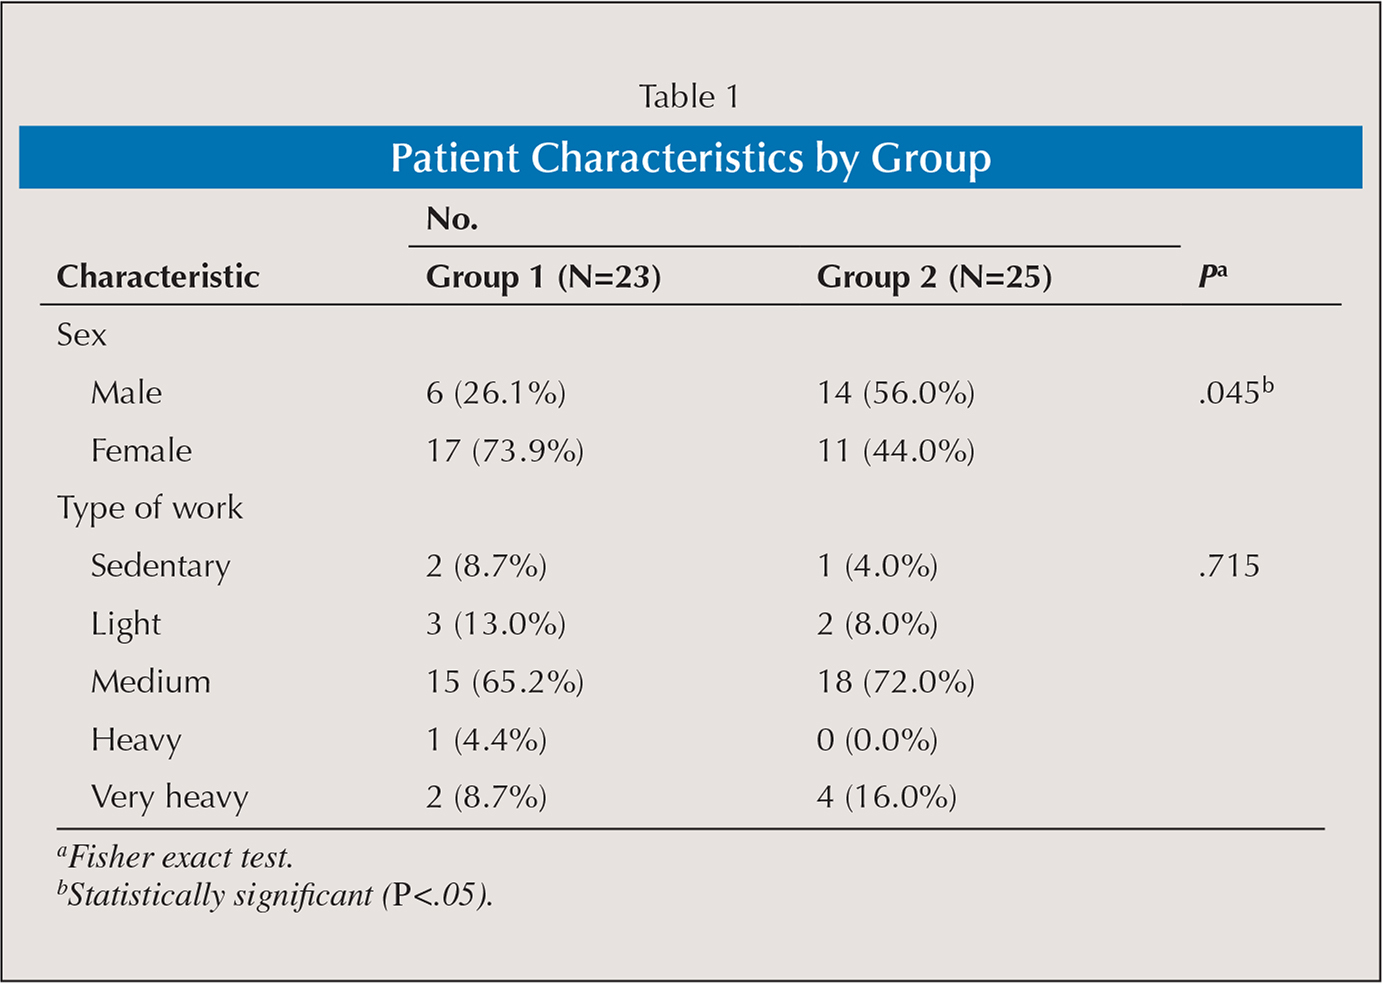 Patient Characteristics by Group